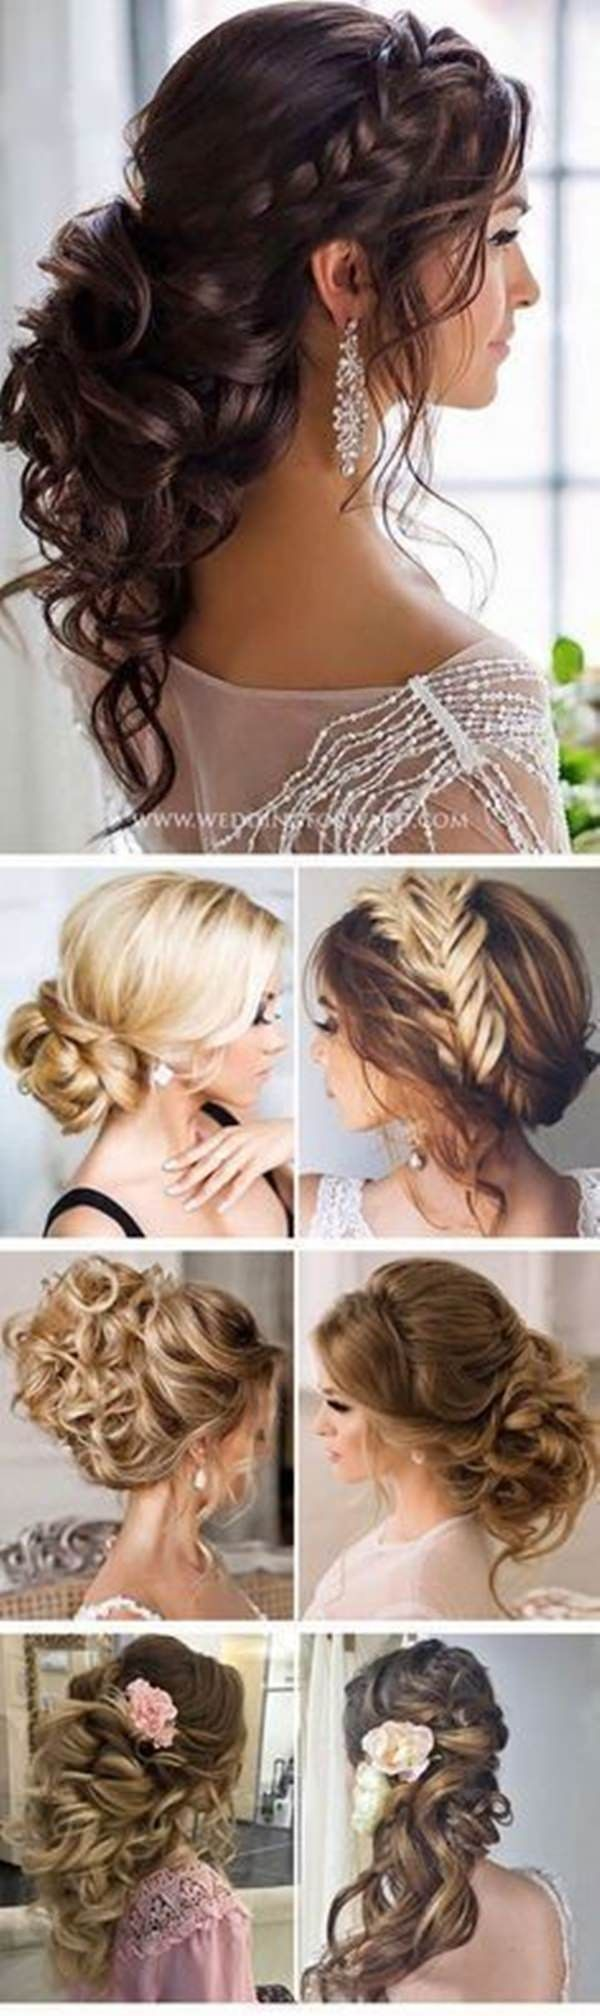 17 Prom Hairstyles Loose Updos To Charge Your Look With Radiance